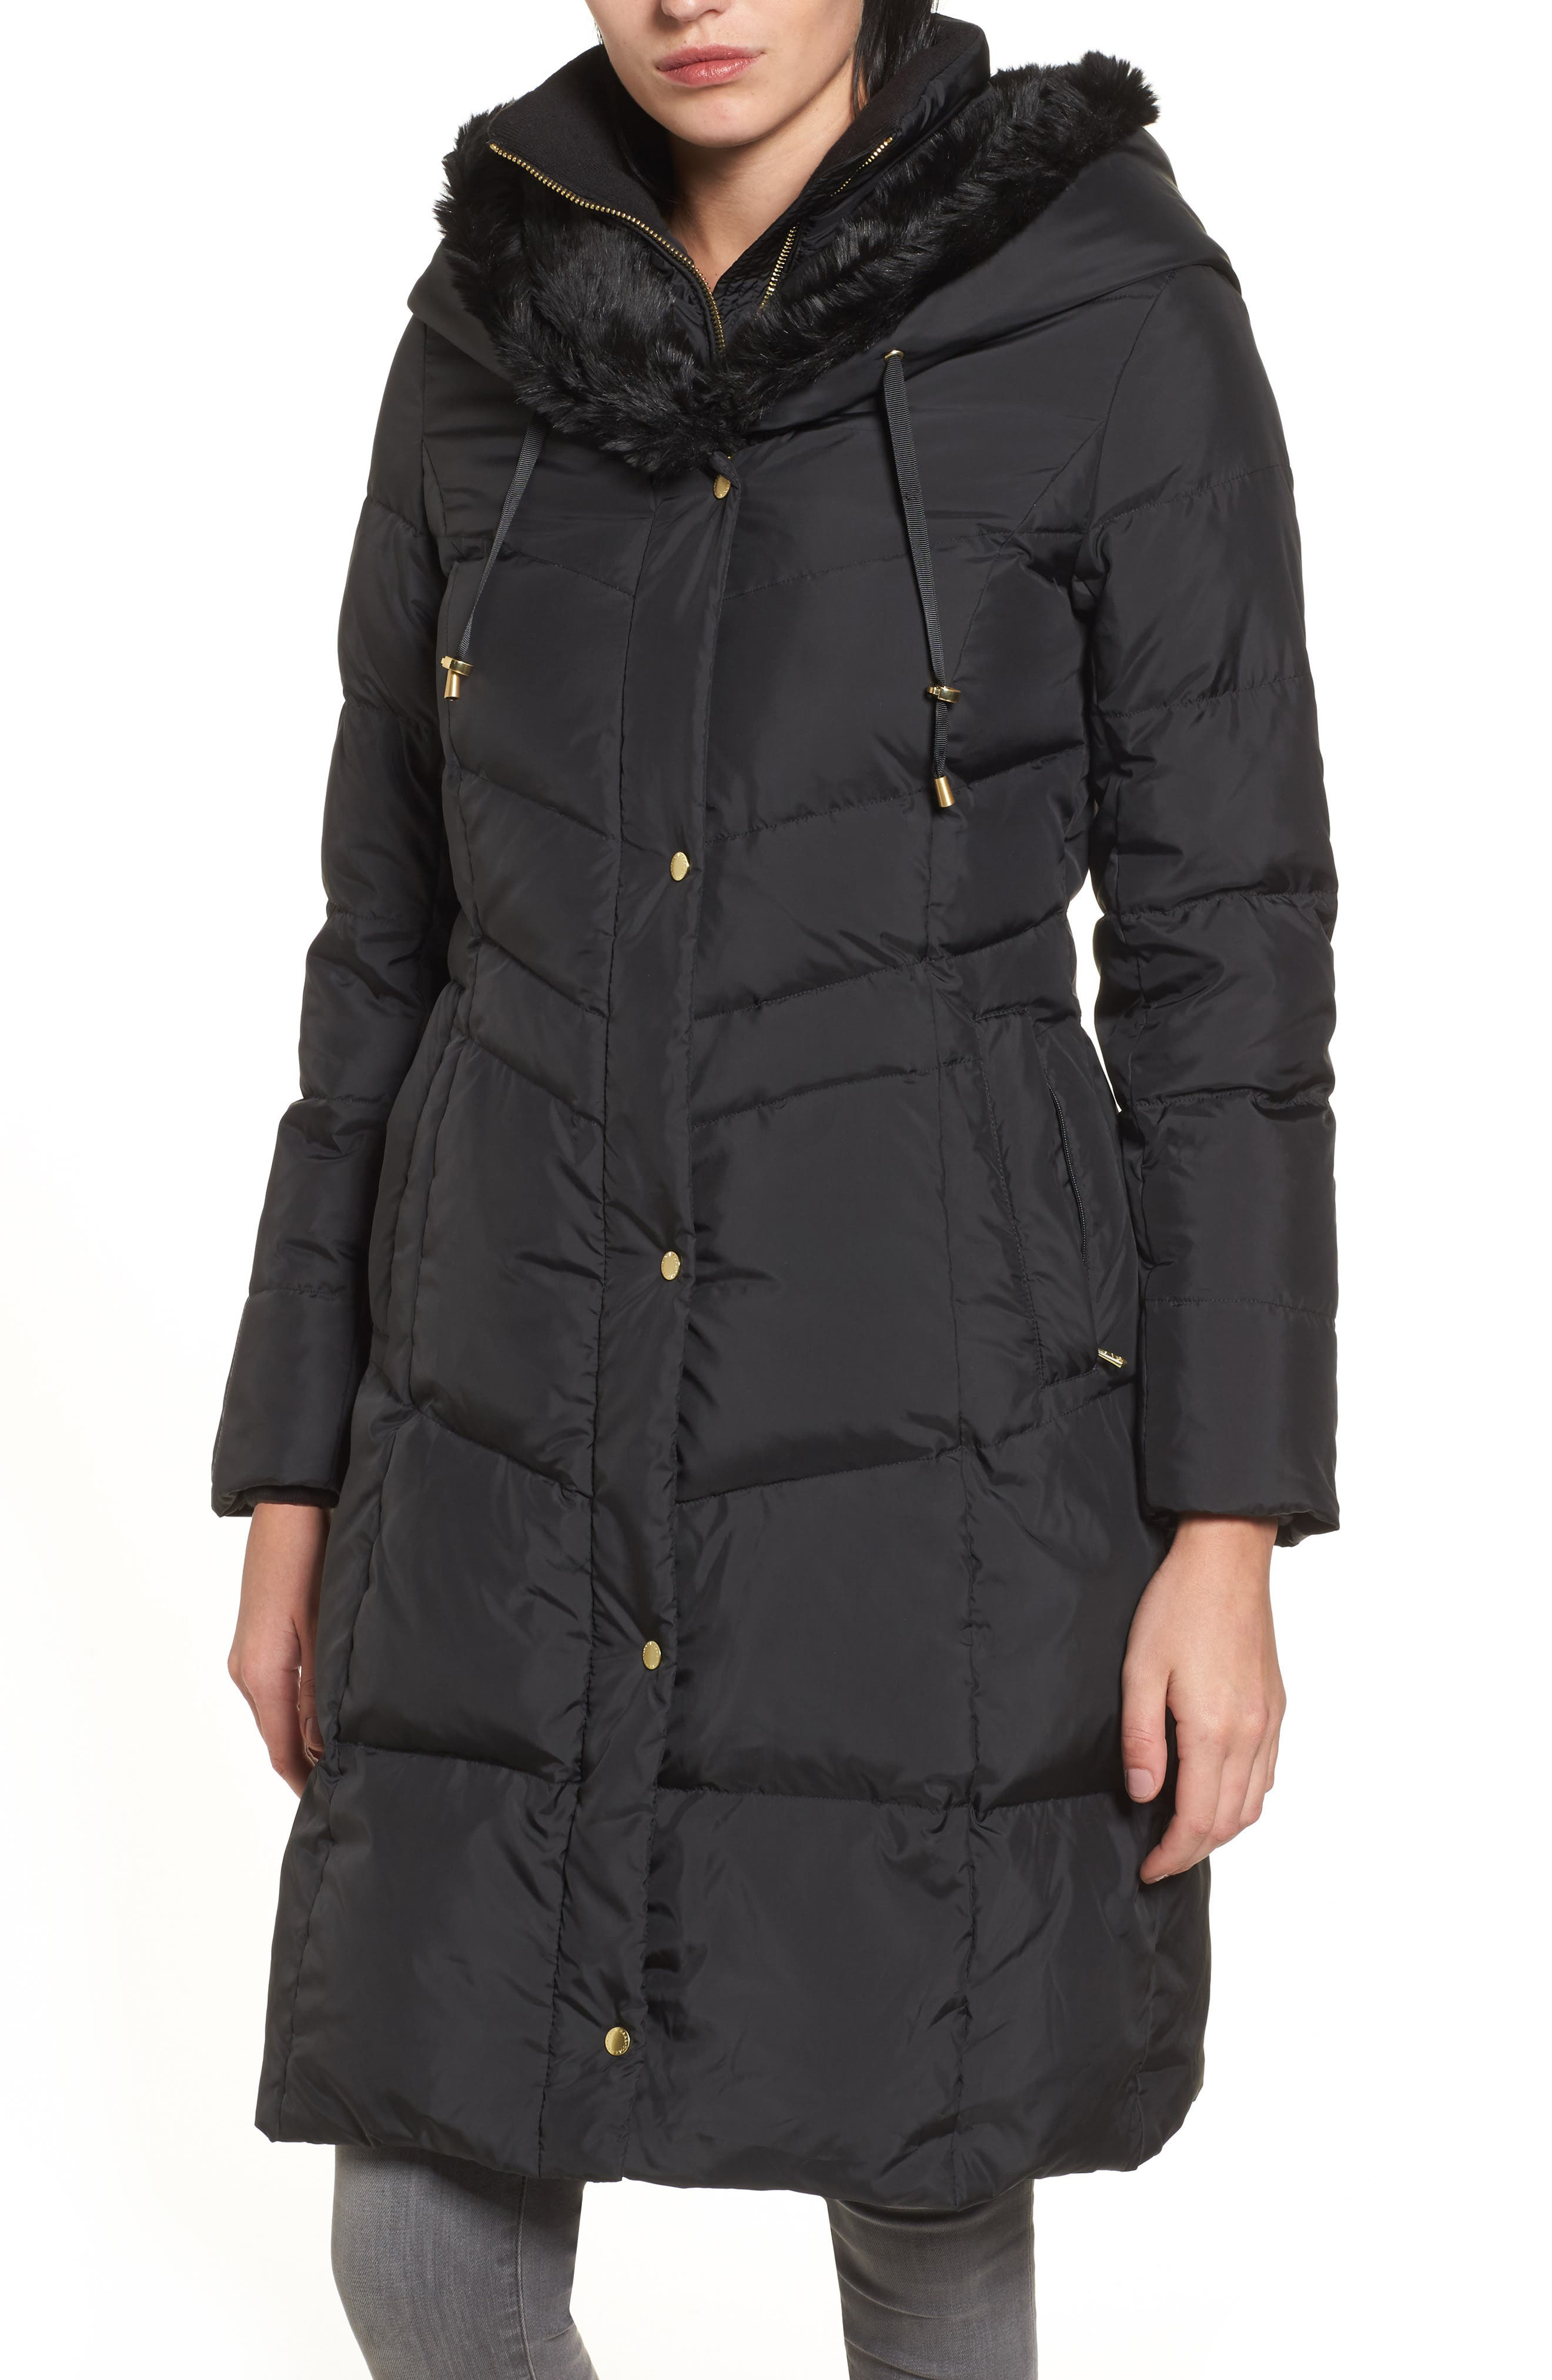 Alternate Image 1 Selected - Cole Haan 3/4 Down Coat with Faux Fur Hood